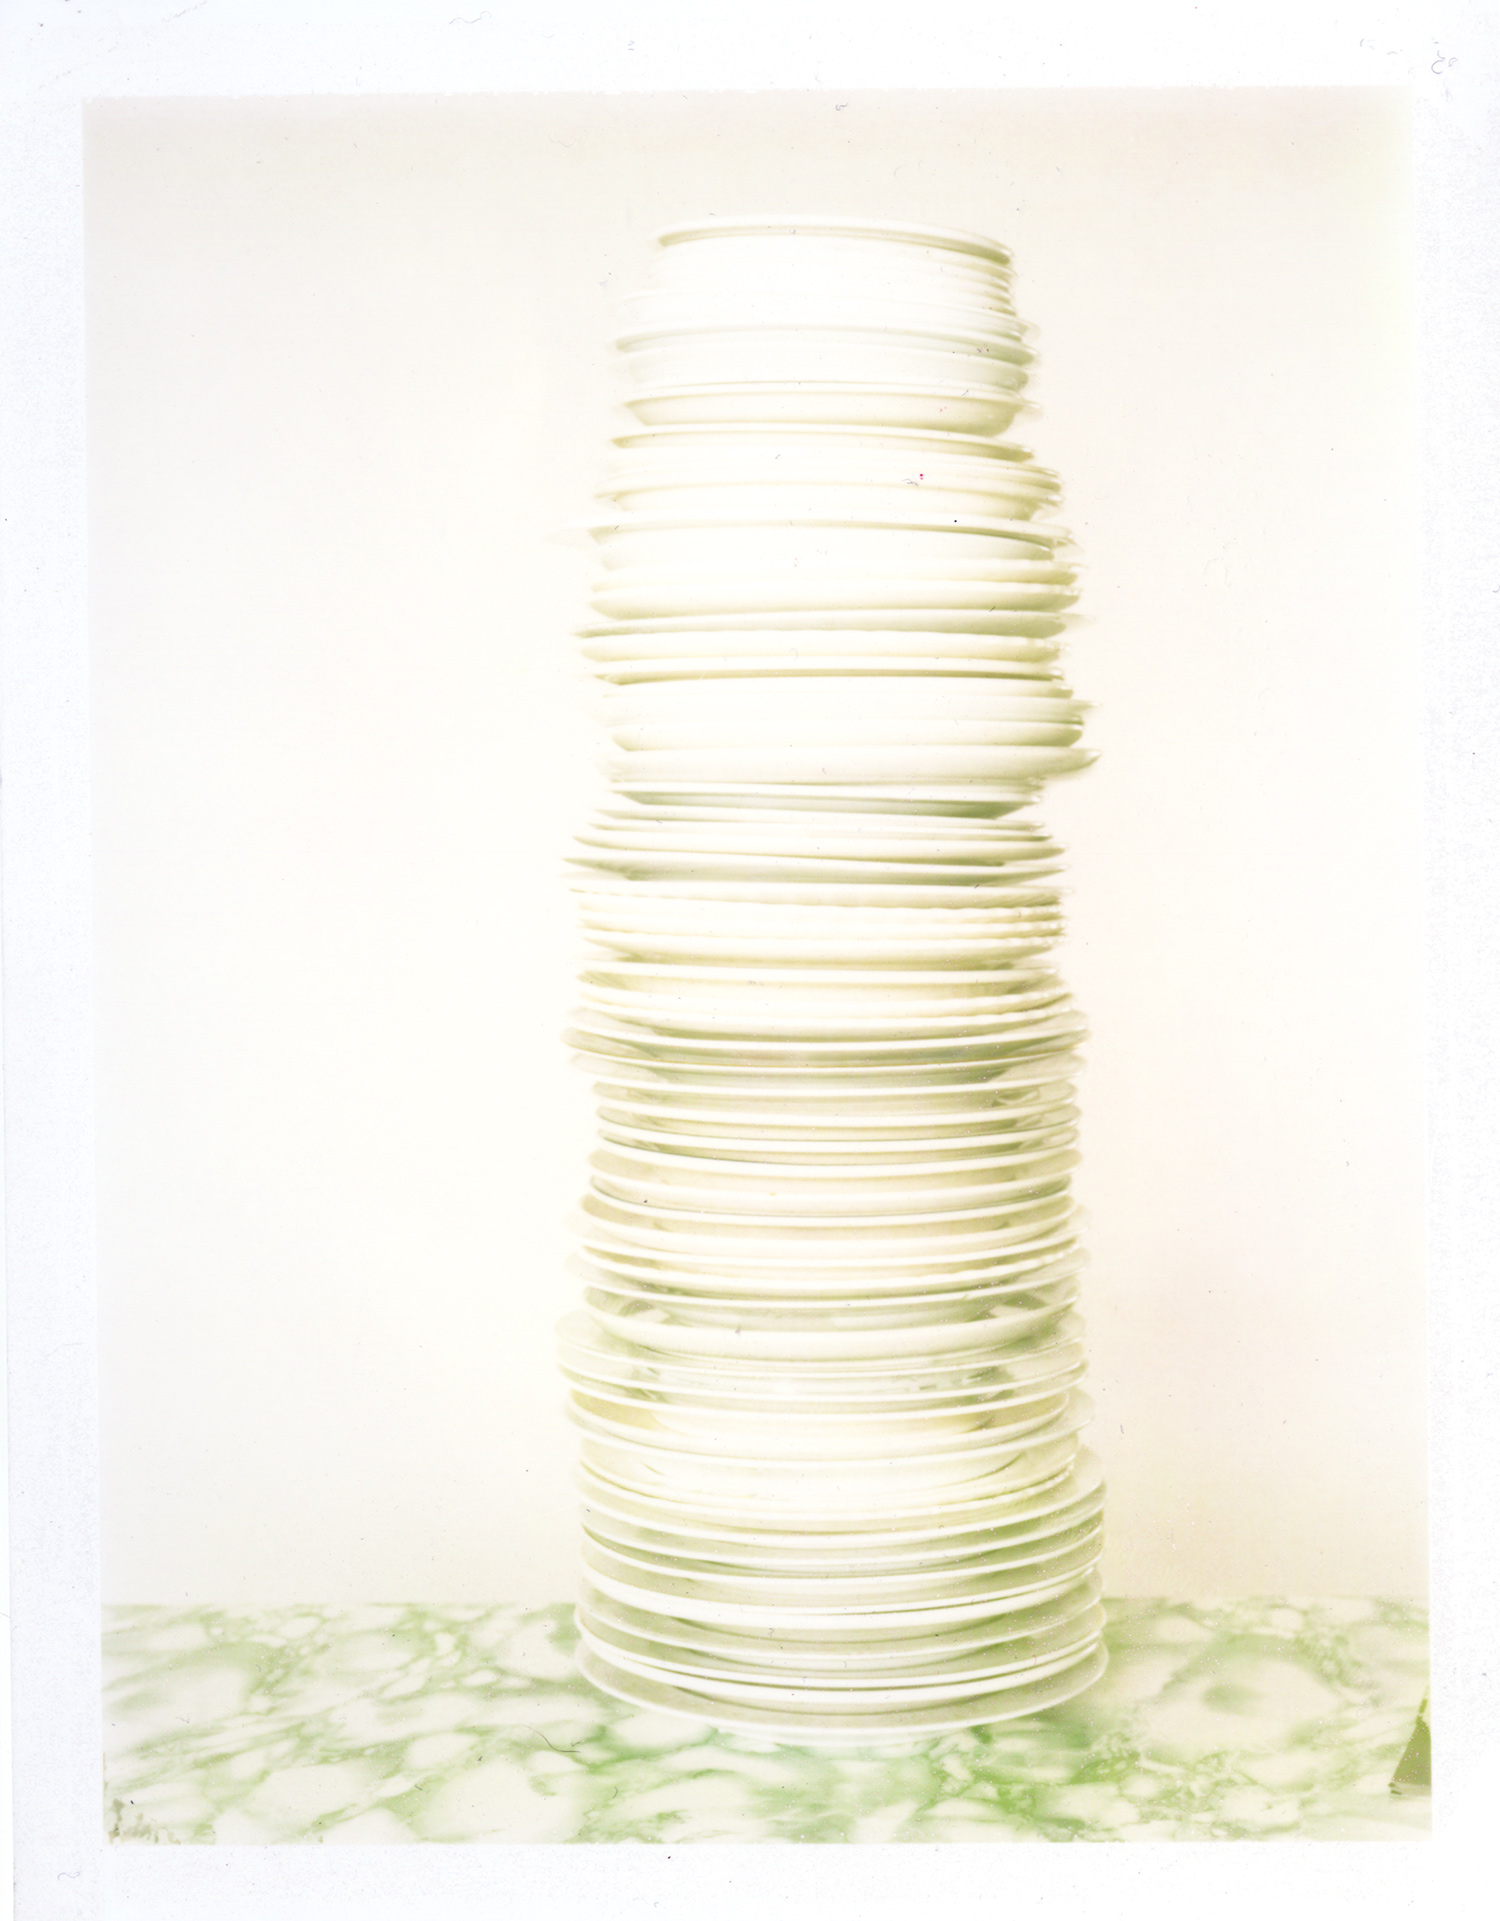 stack-of-plates_2011_lo_op.jpg